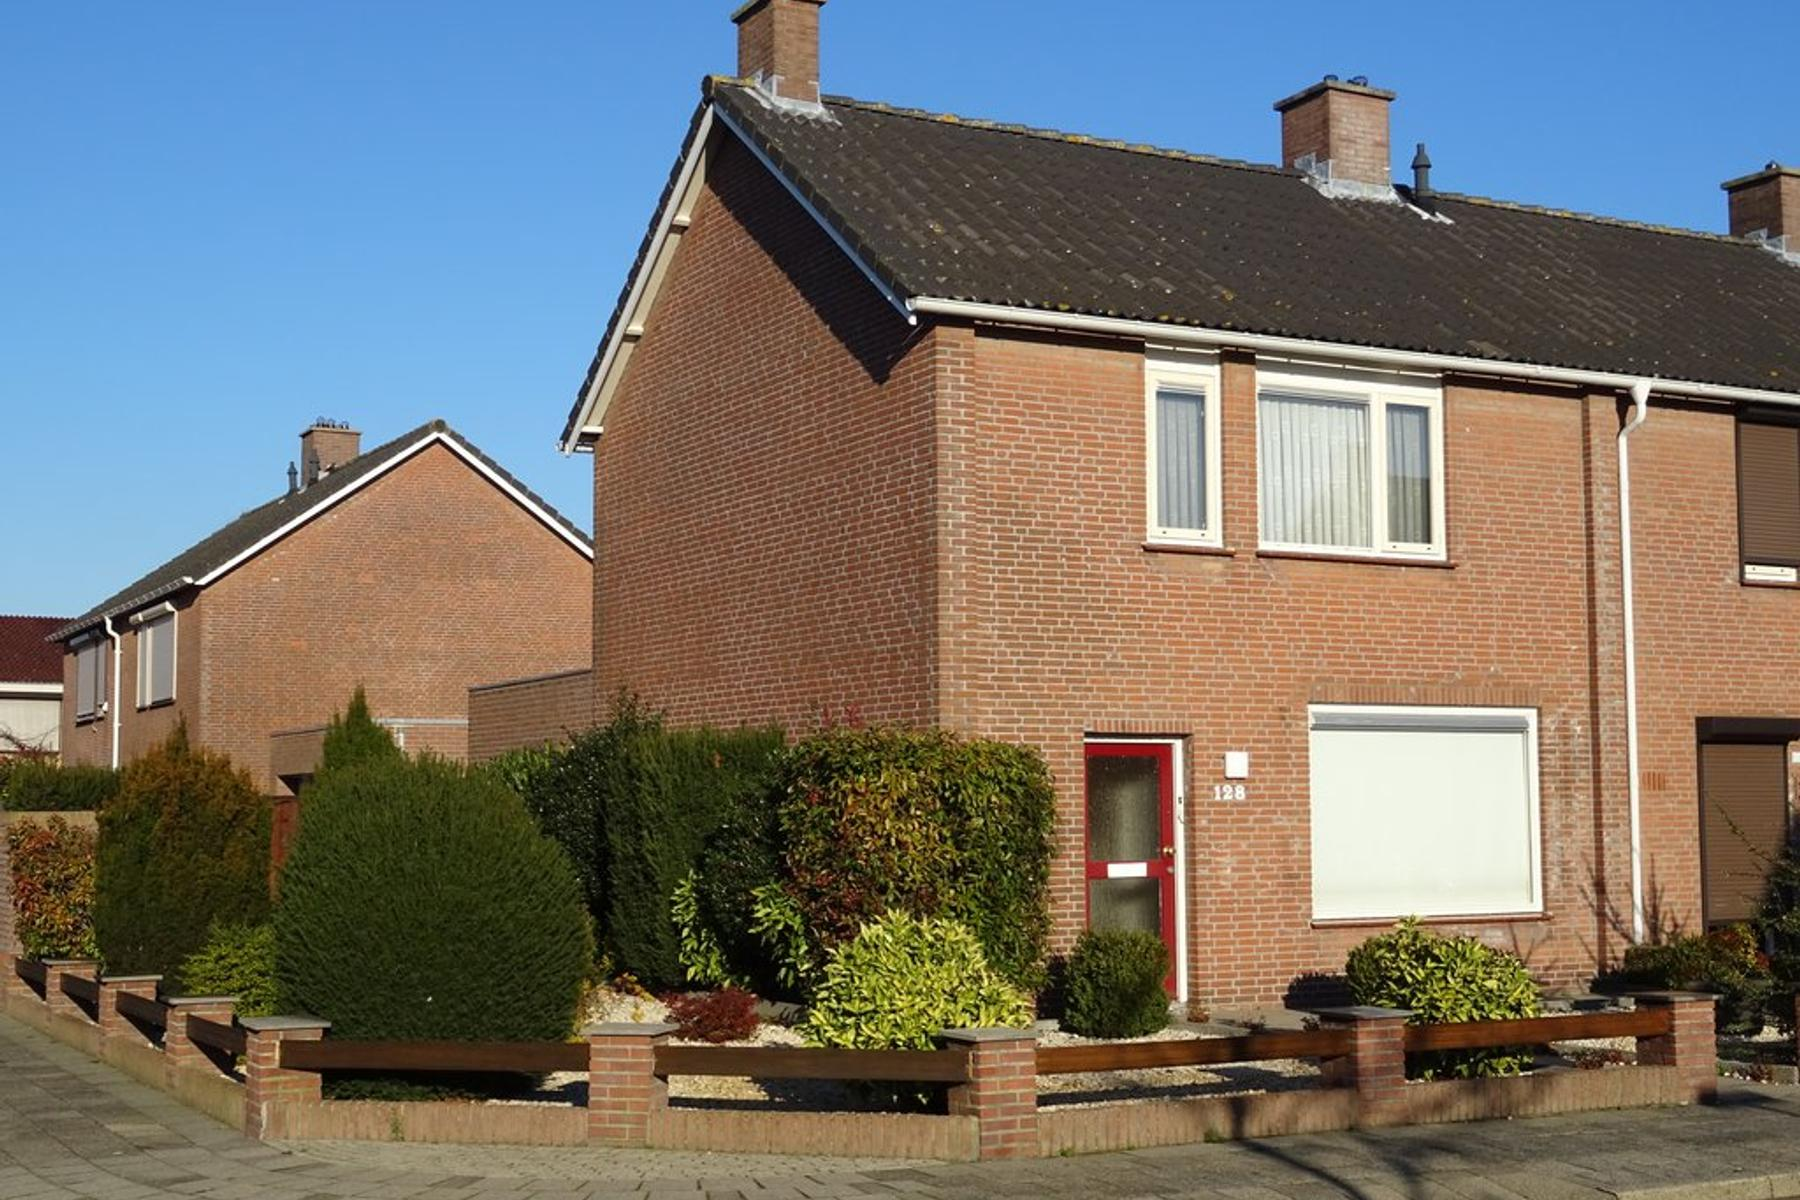 Rozenstraat 128 in St. Willebrord 4711 GJ